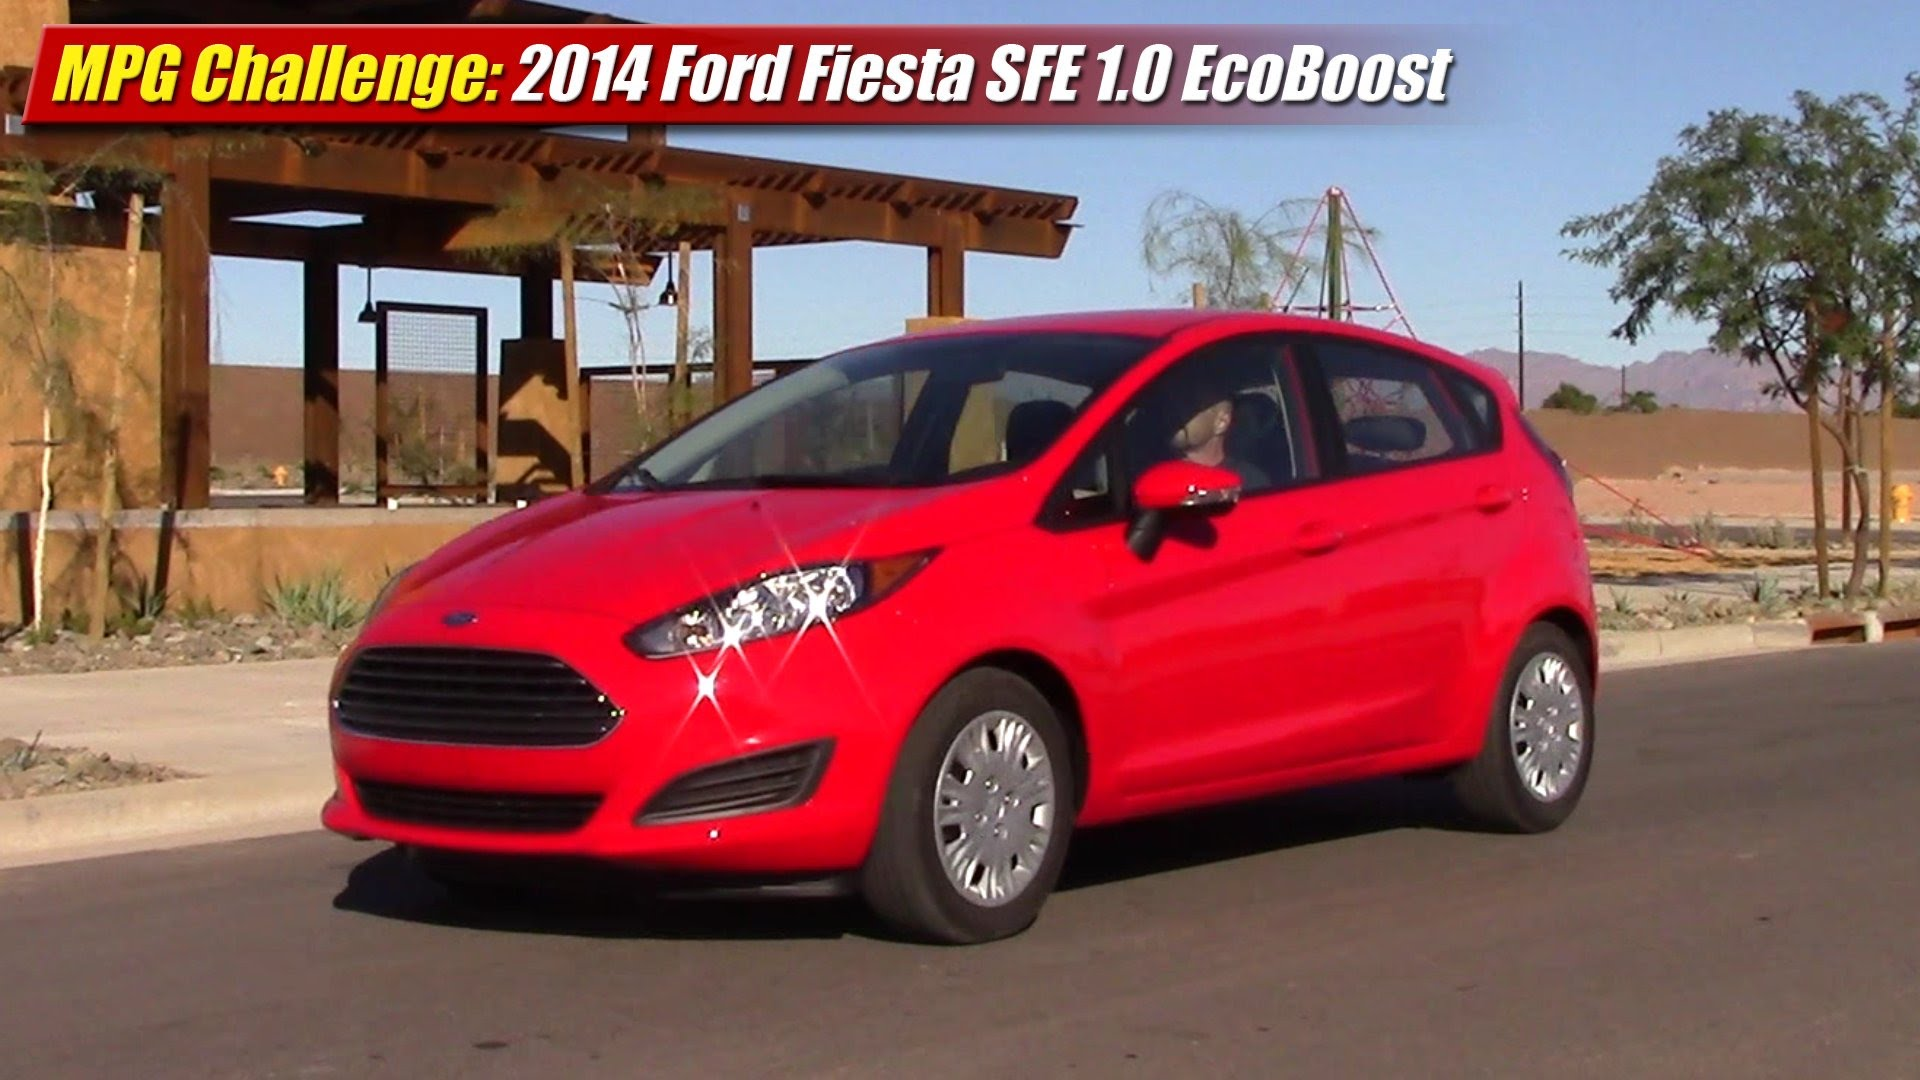 mpg challenge 2014 ford fiesta sfe 1 0 ecoboost testdriven tv. Black Bedroom Furniture Sets. Home Design Ideas